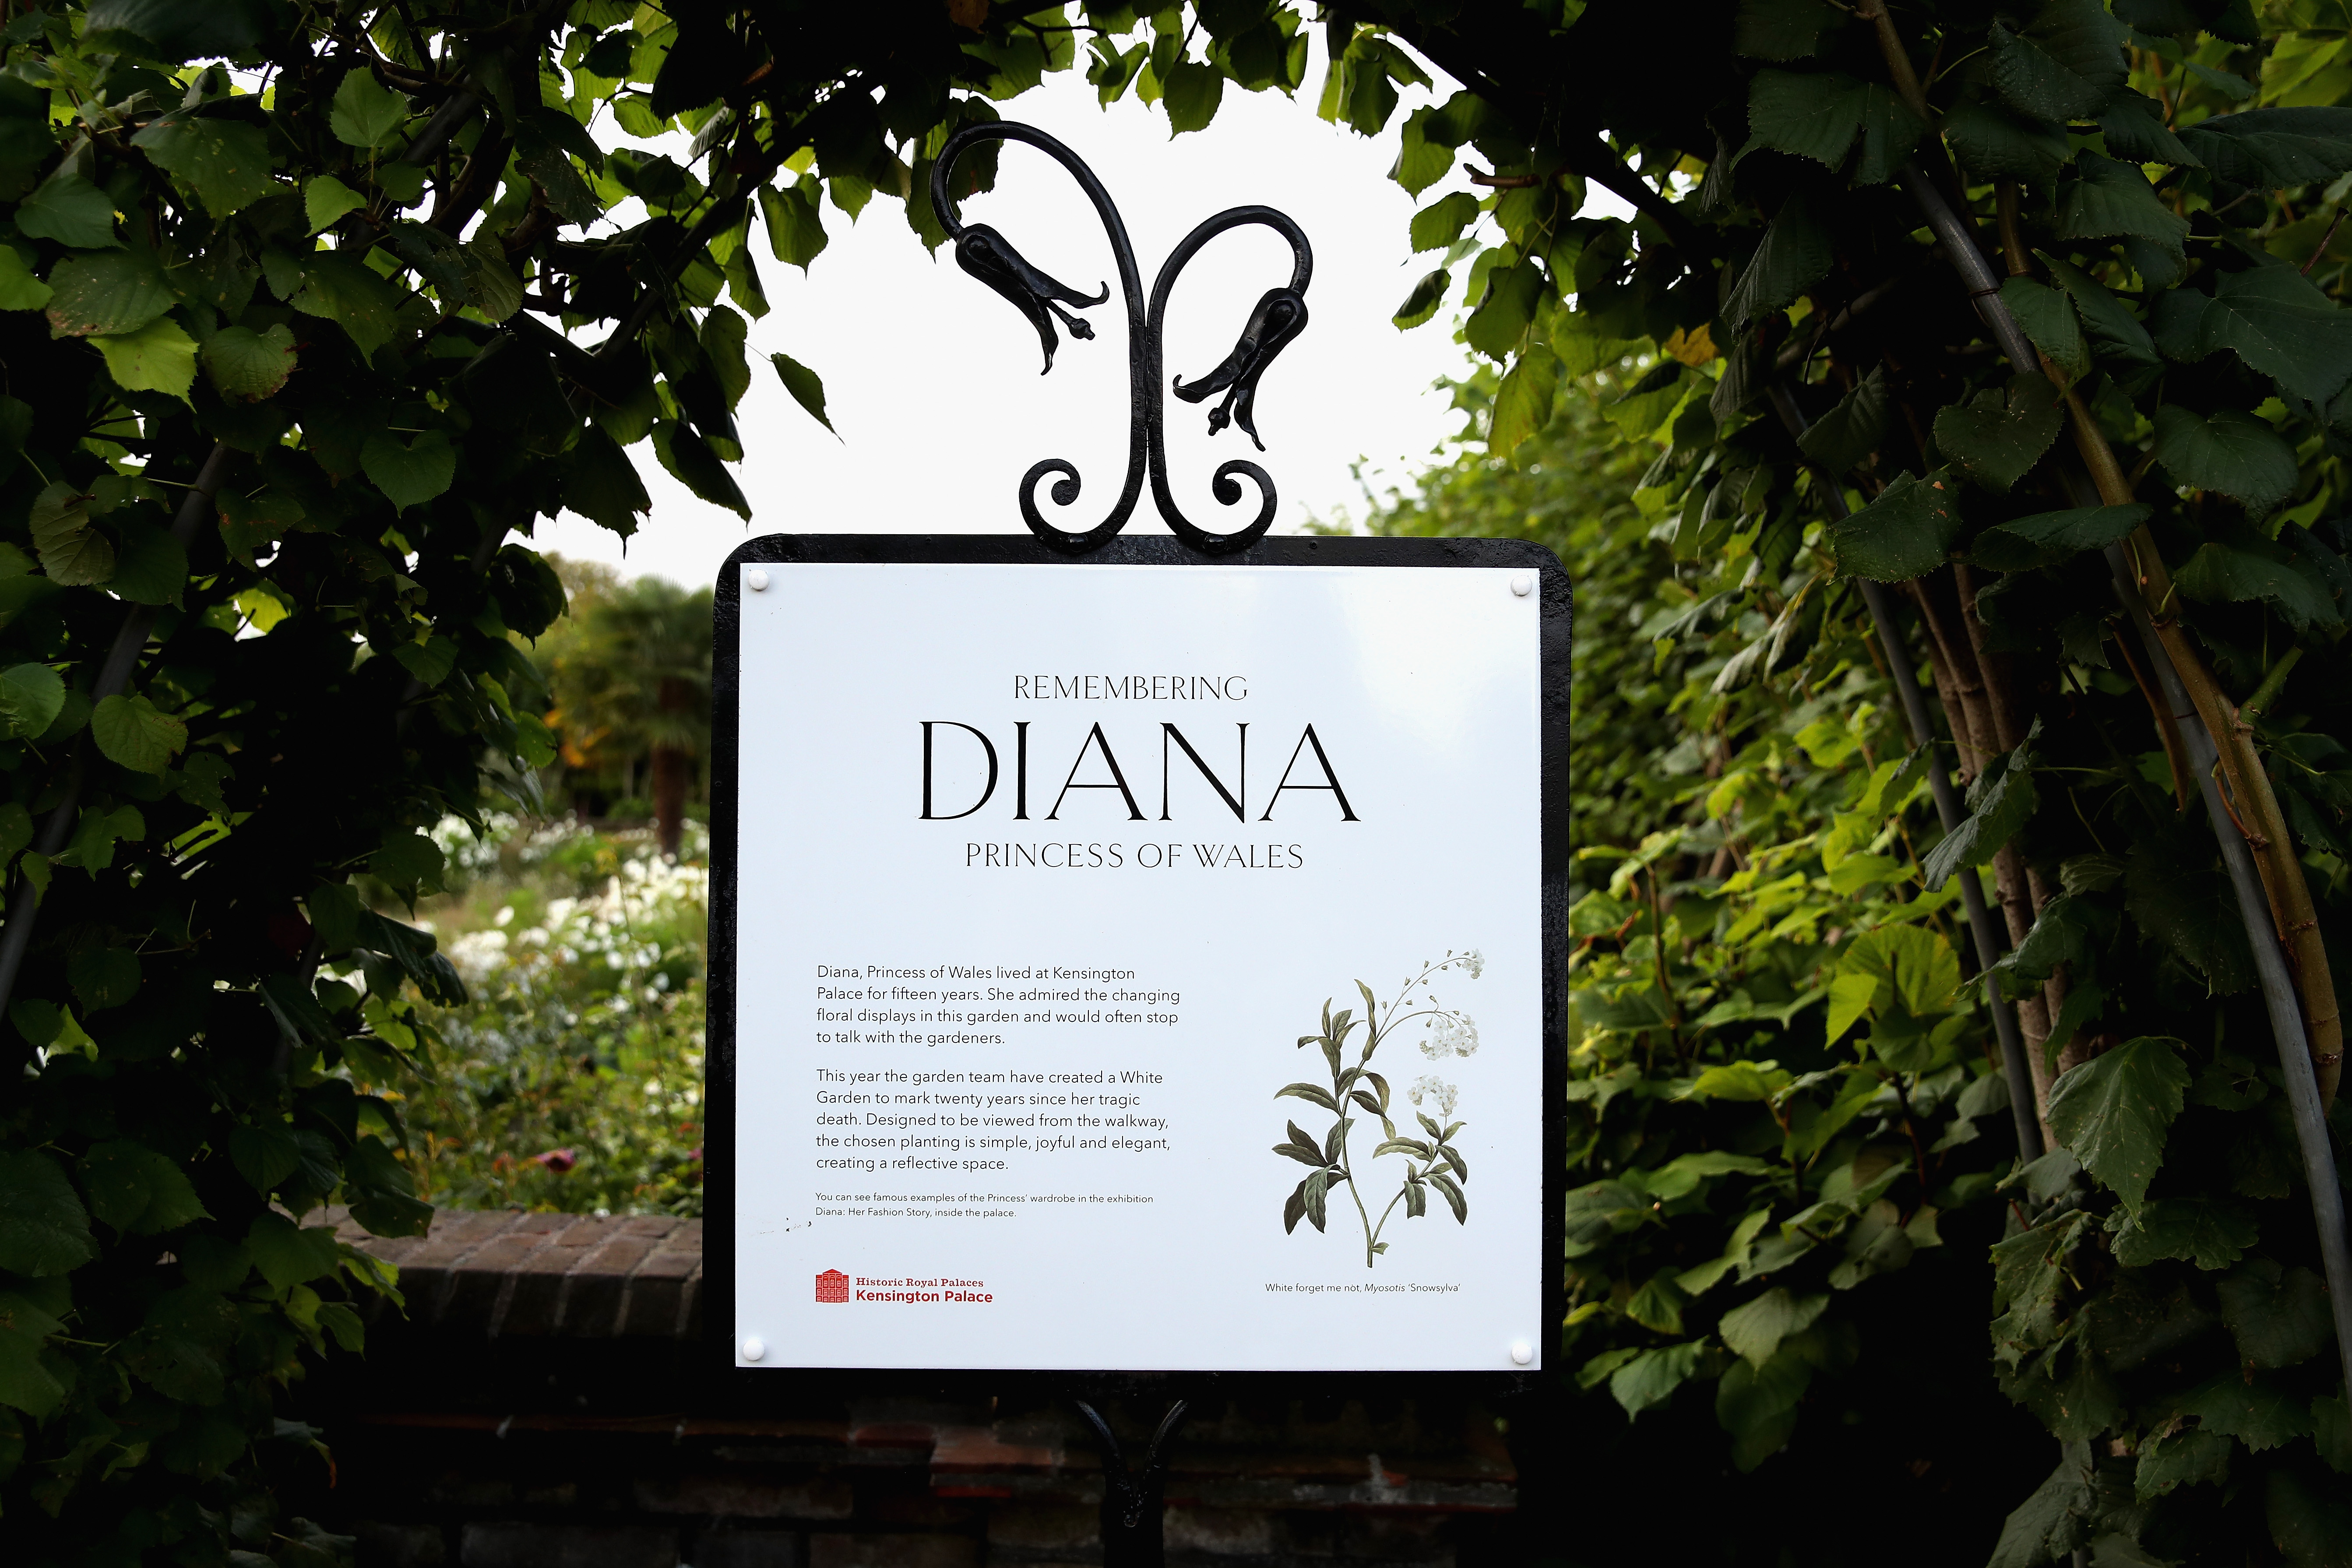 General view of the Princess Diana 'White Garden' at Kensington Palace on August 24, 2017 in London, England. Princess Diana lived at Kensington Palace for fifteen years, after which this garden was created in memory of her now twenty years after her death.